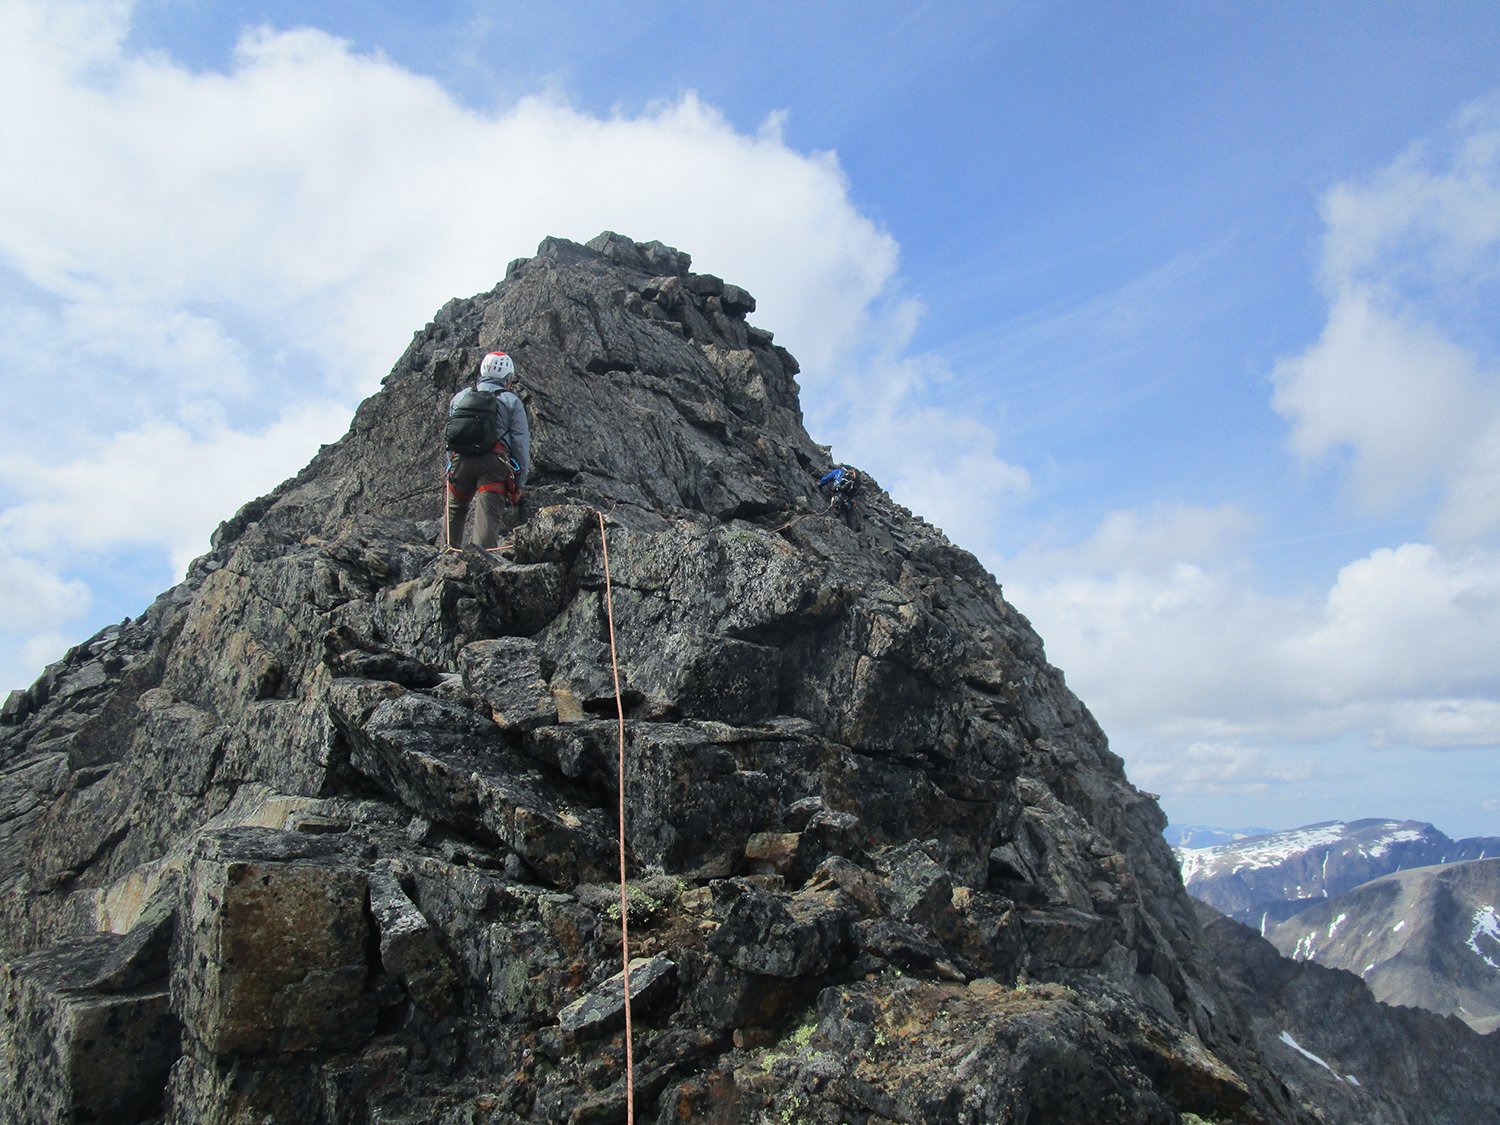 Approaching the summit of Mount Caubvick with Mike on lead. Photo:Deb Clouthier